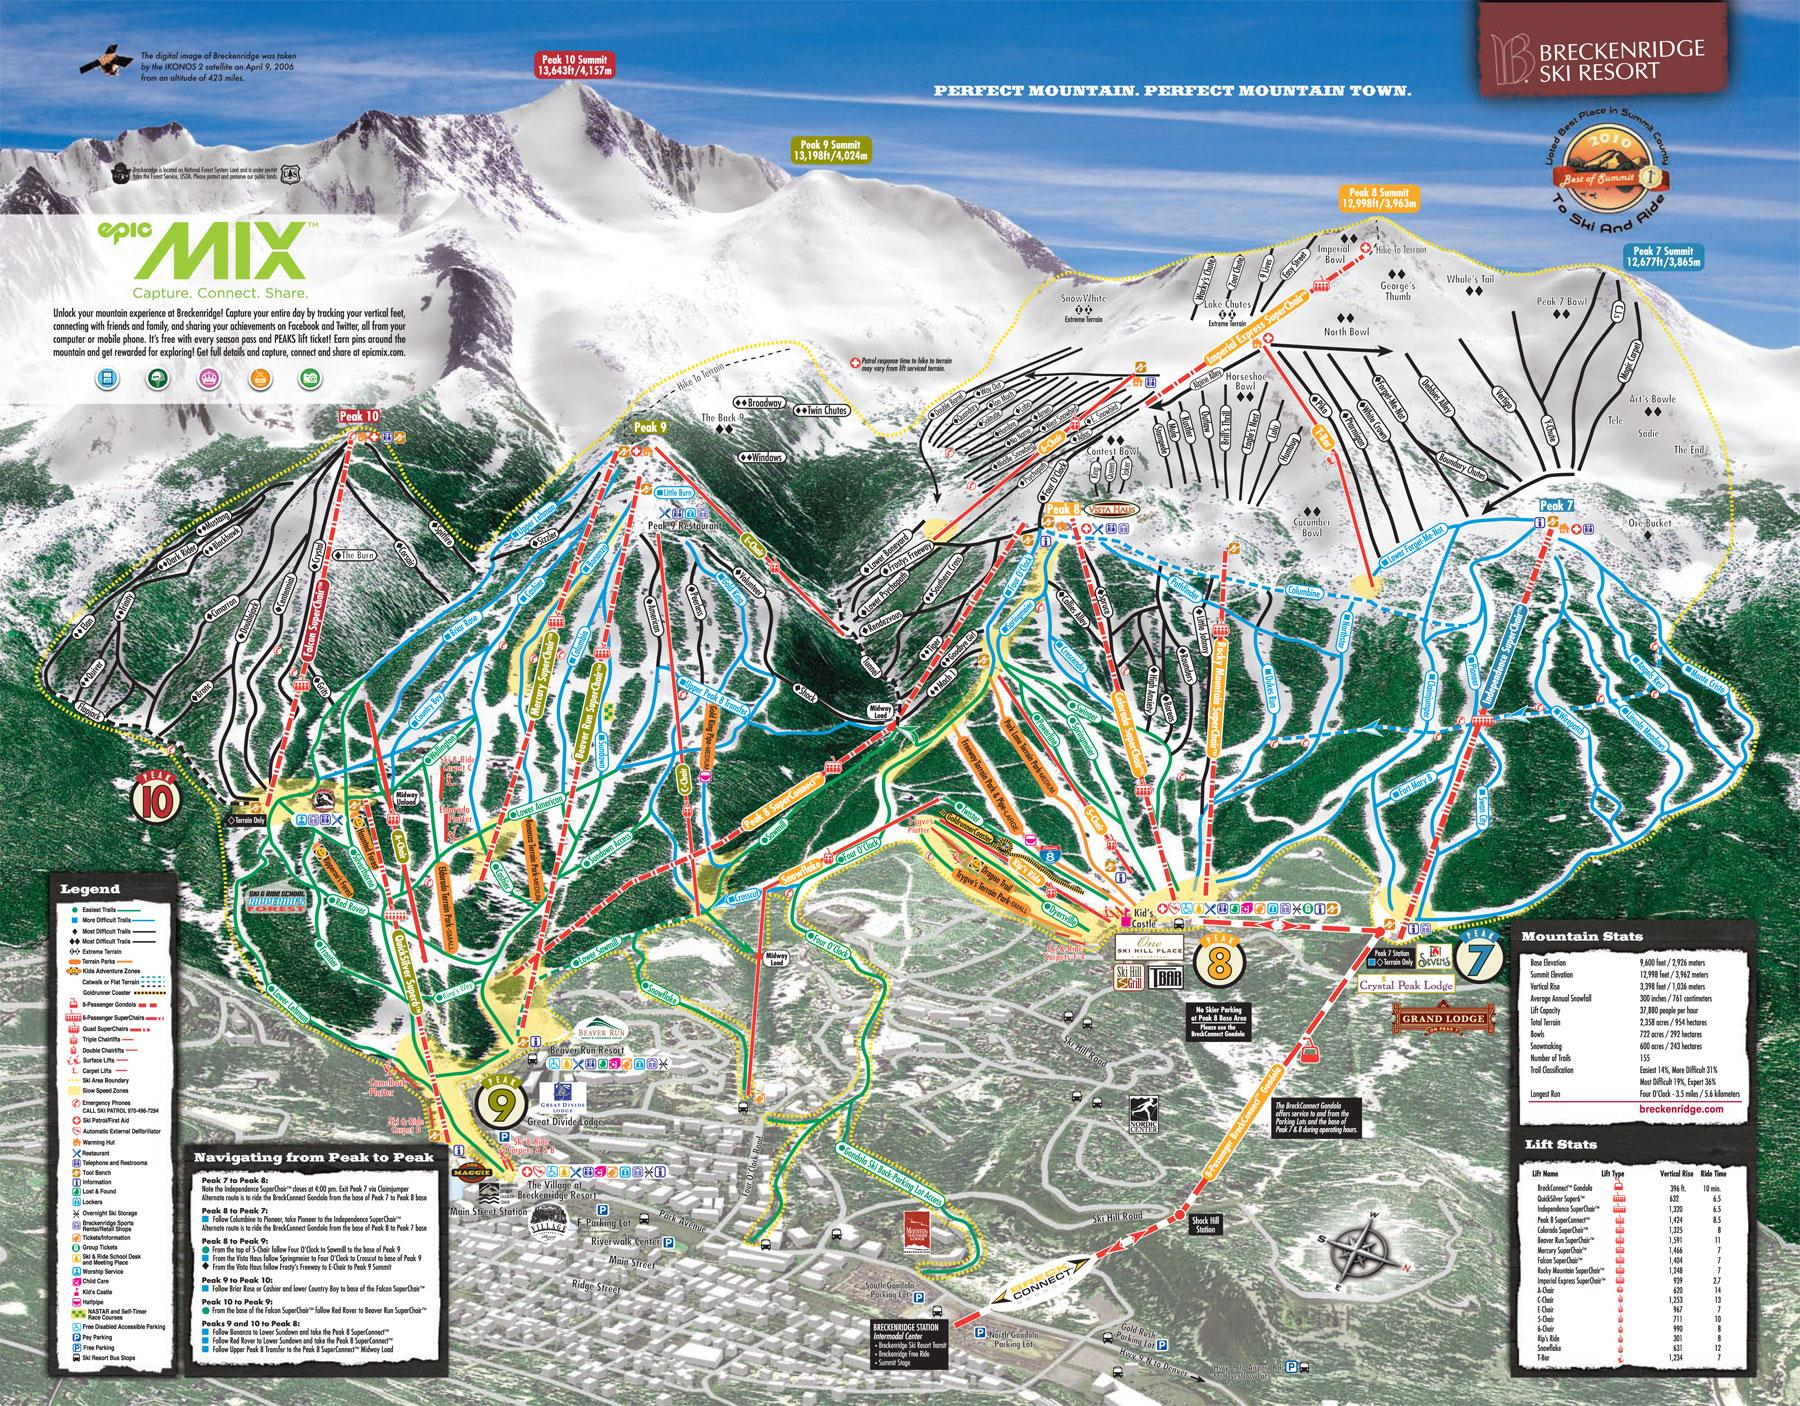 Piste Maps For American Ski Resorts JSki - Us ski resorts map